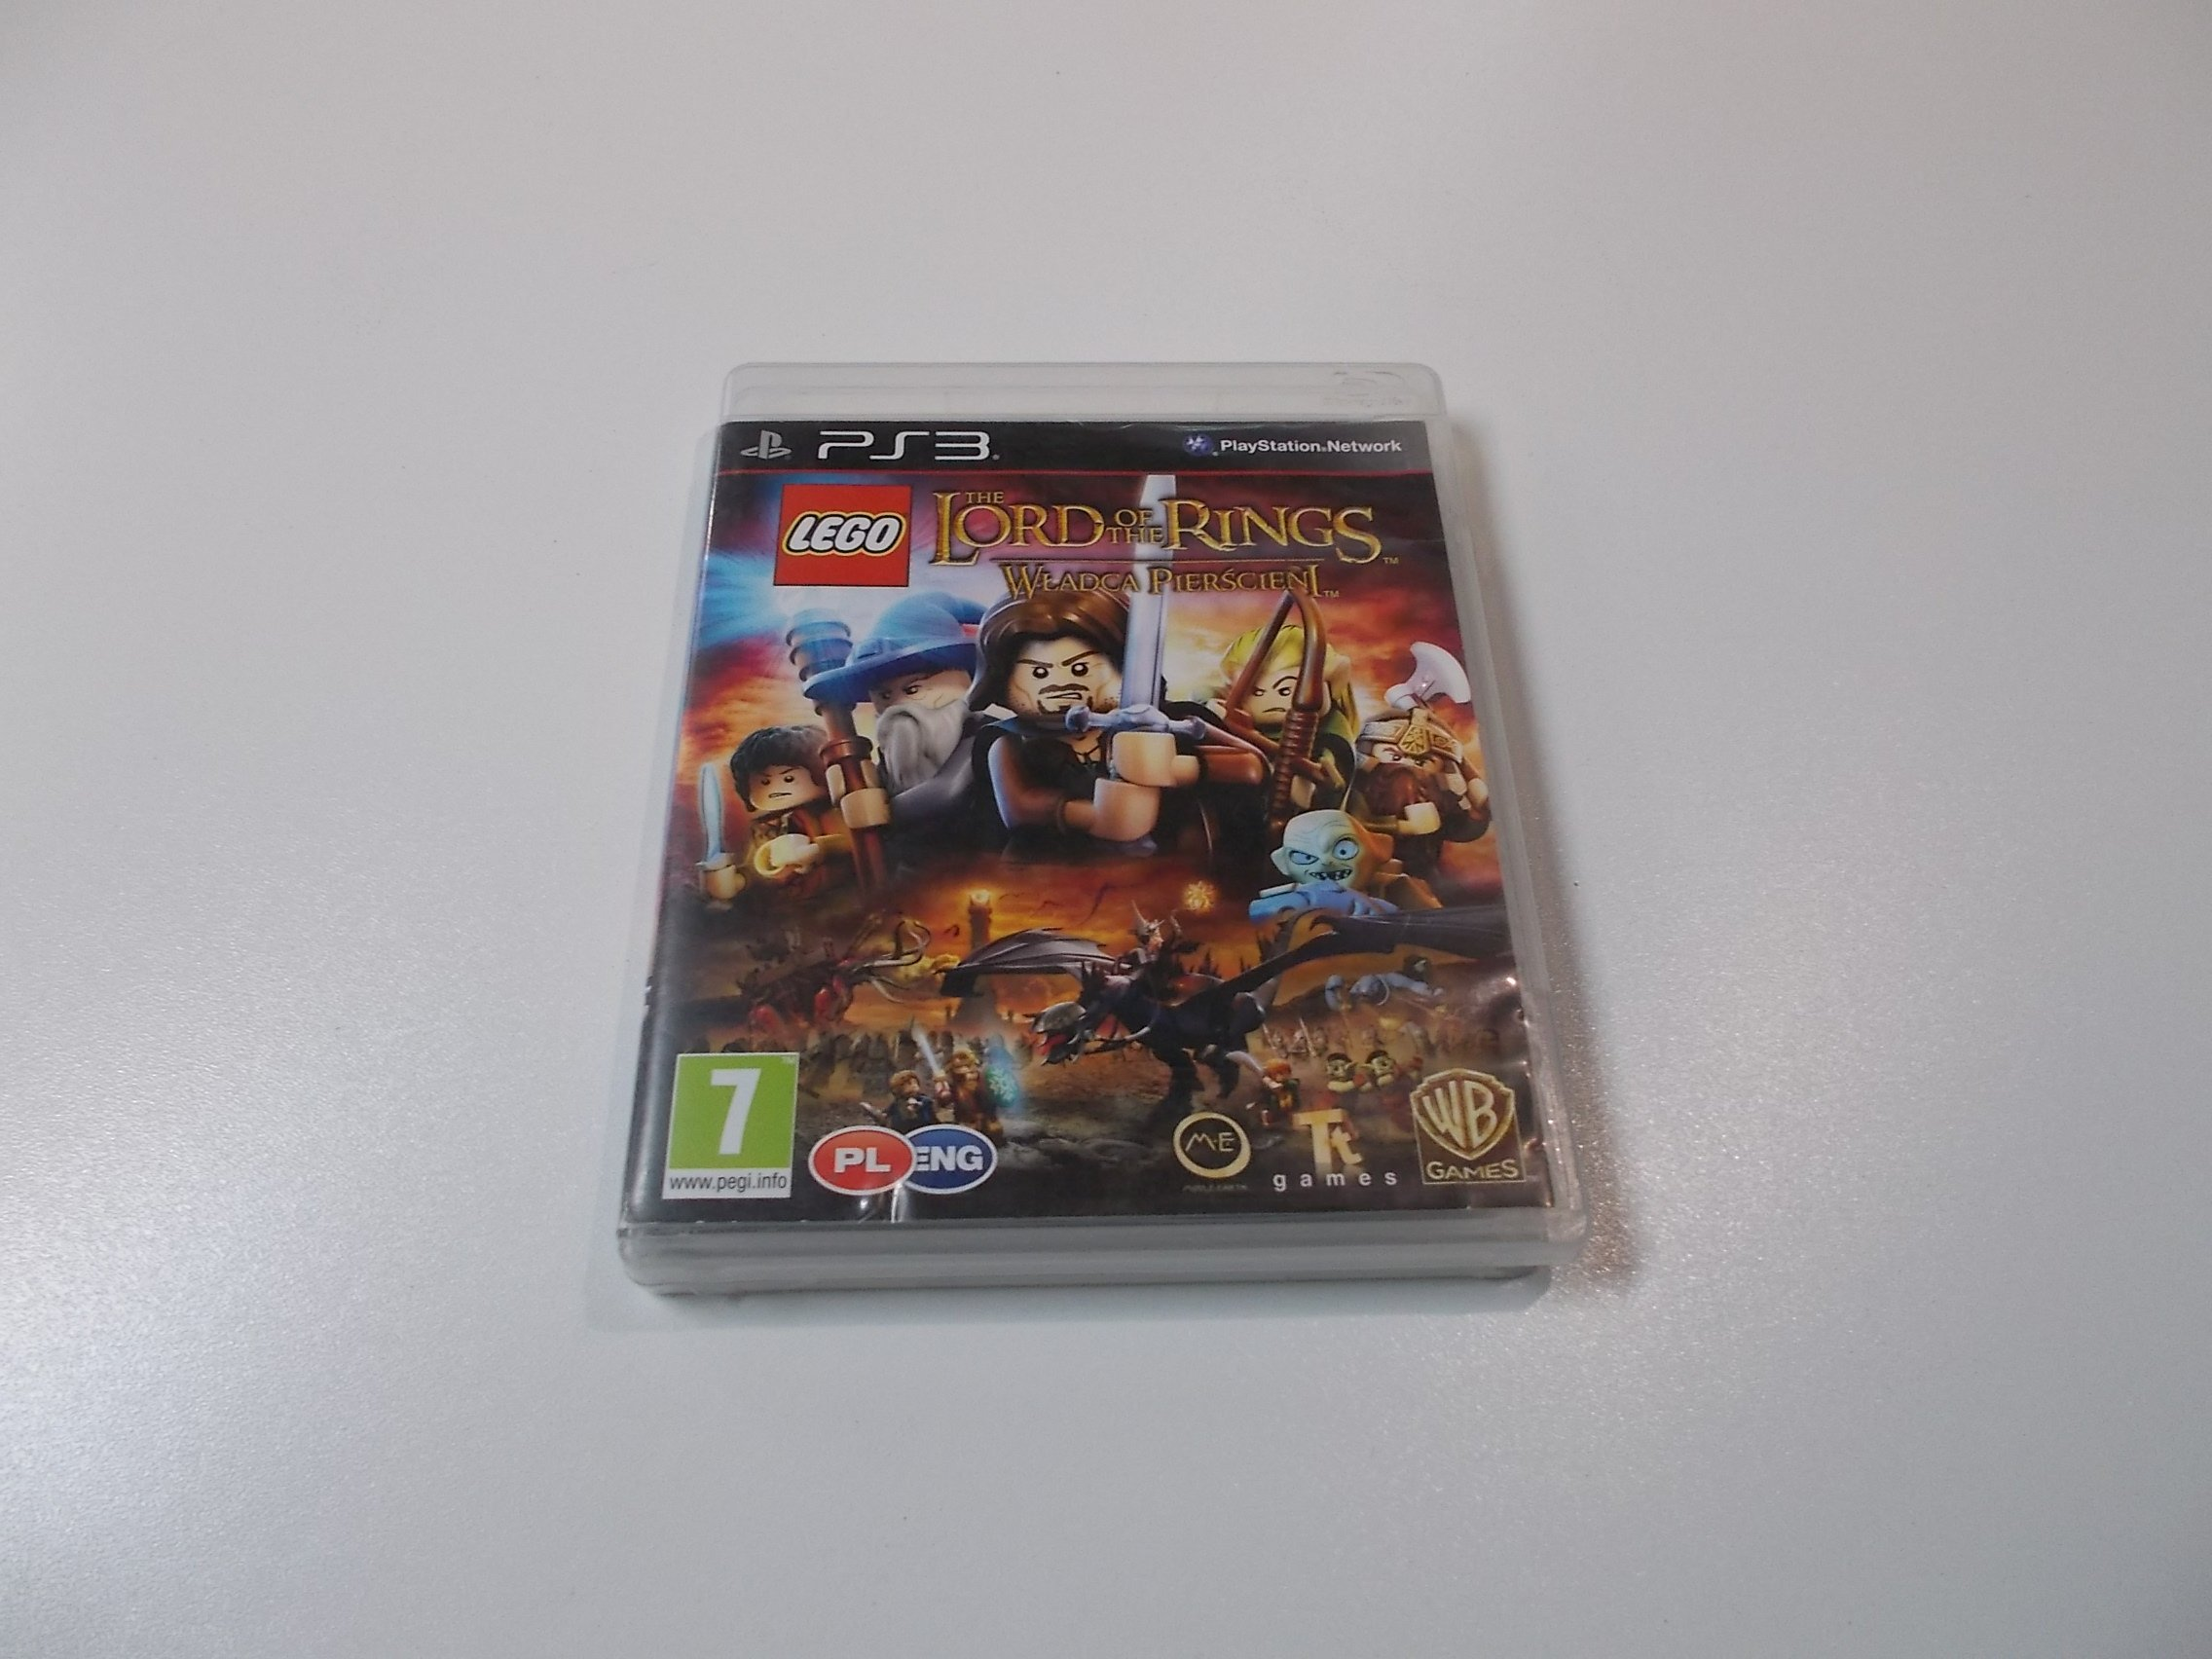 LEGO Lord of the Rings: Władca Pierścieni - GRA Ps3 - Opole 0420